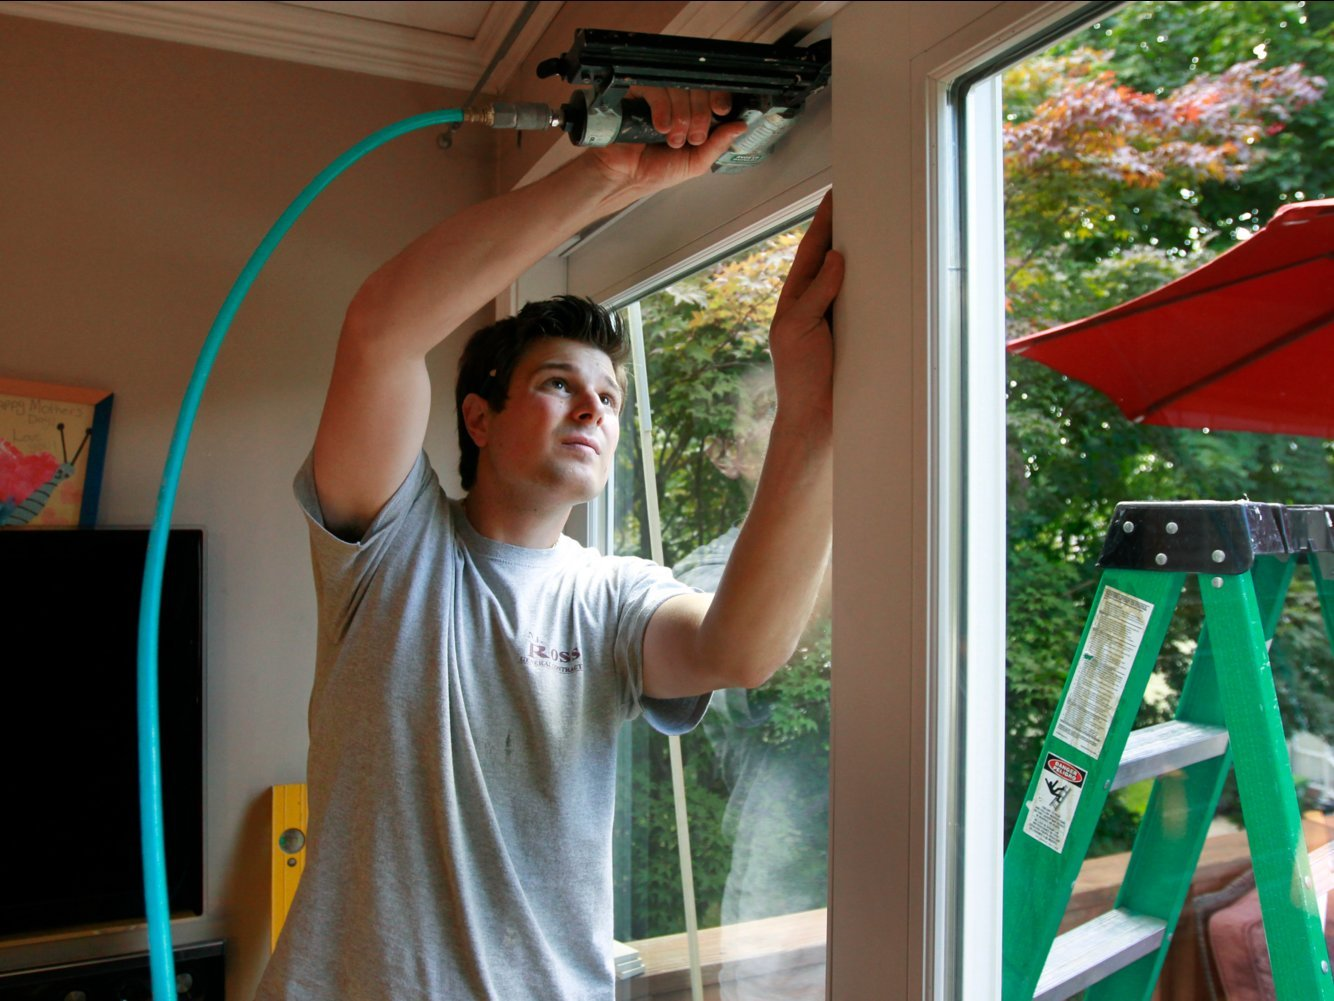 The 8 biggest mistakes people make when remodeling their homes, according to real estate agents